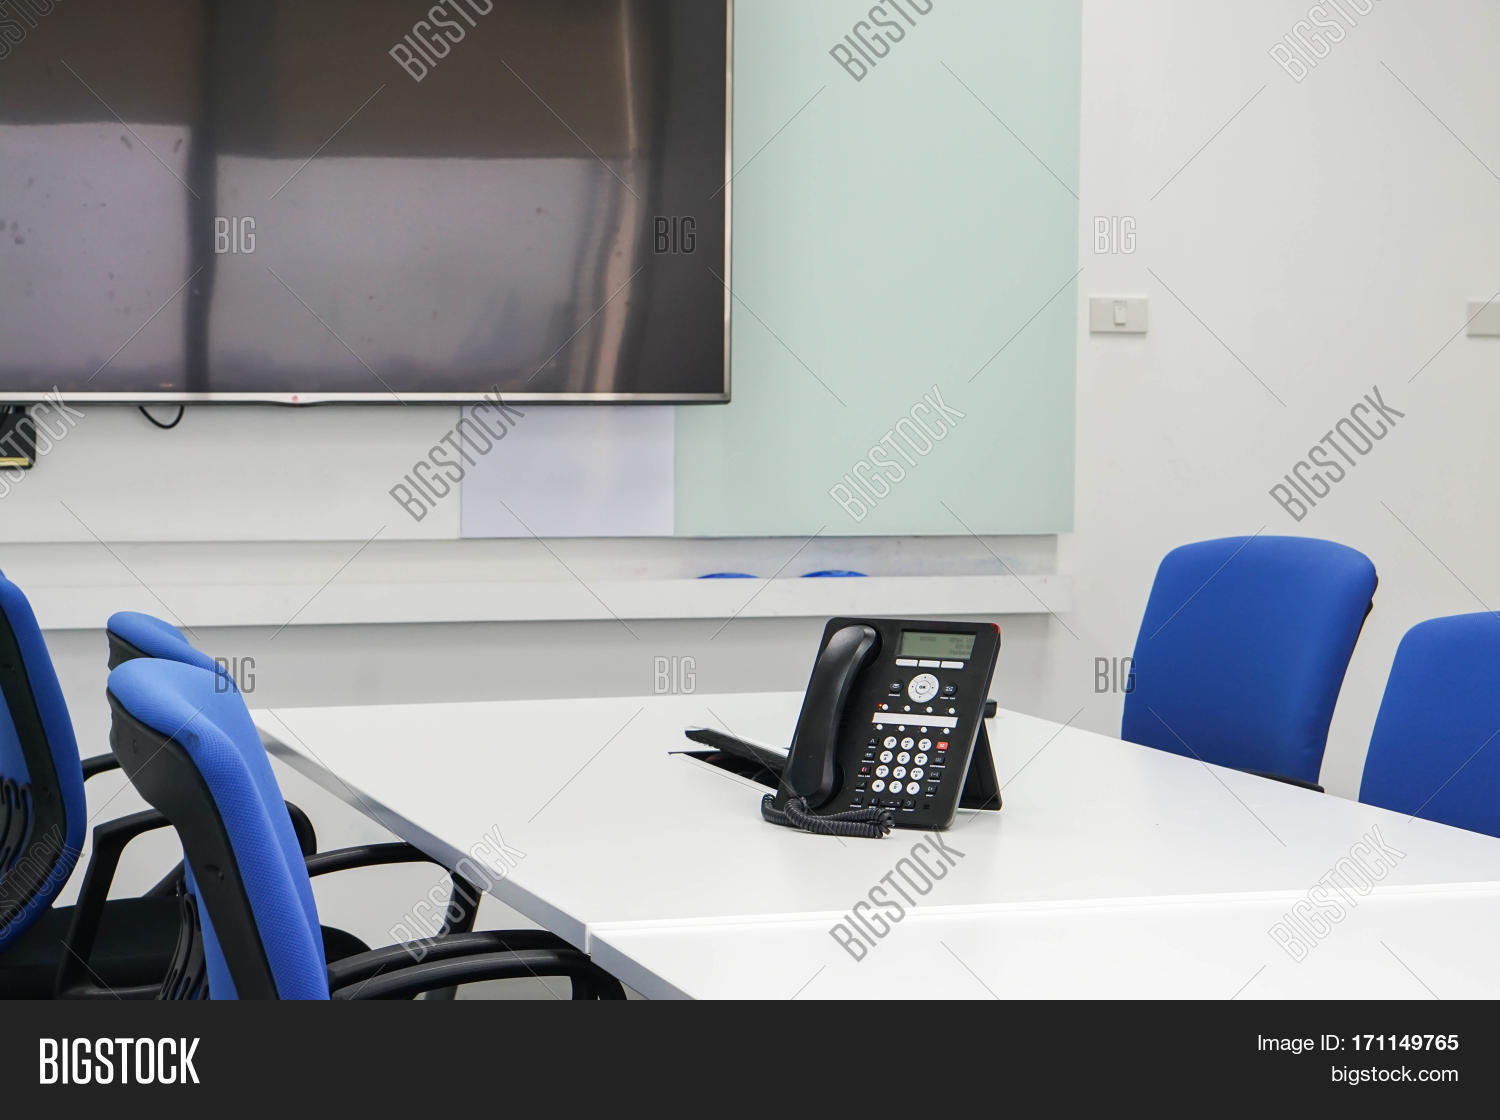 Ip Phone On Table Image Photo Free Trial Bigstock